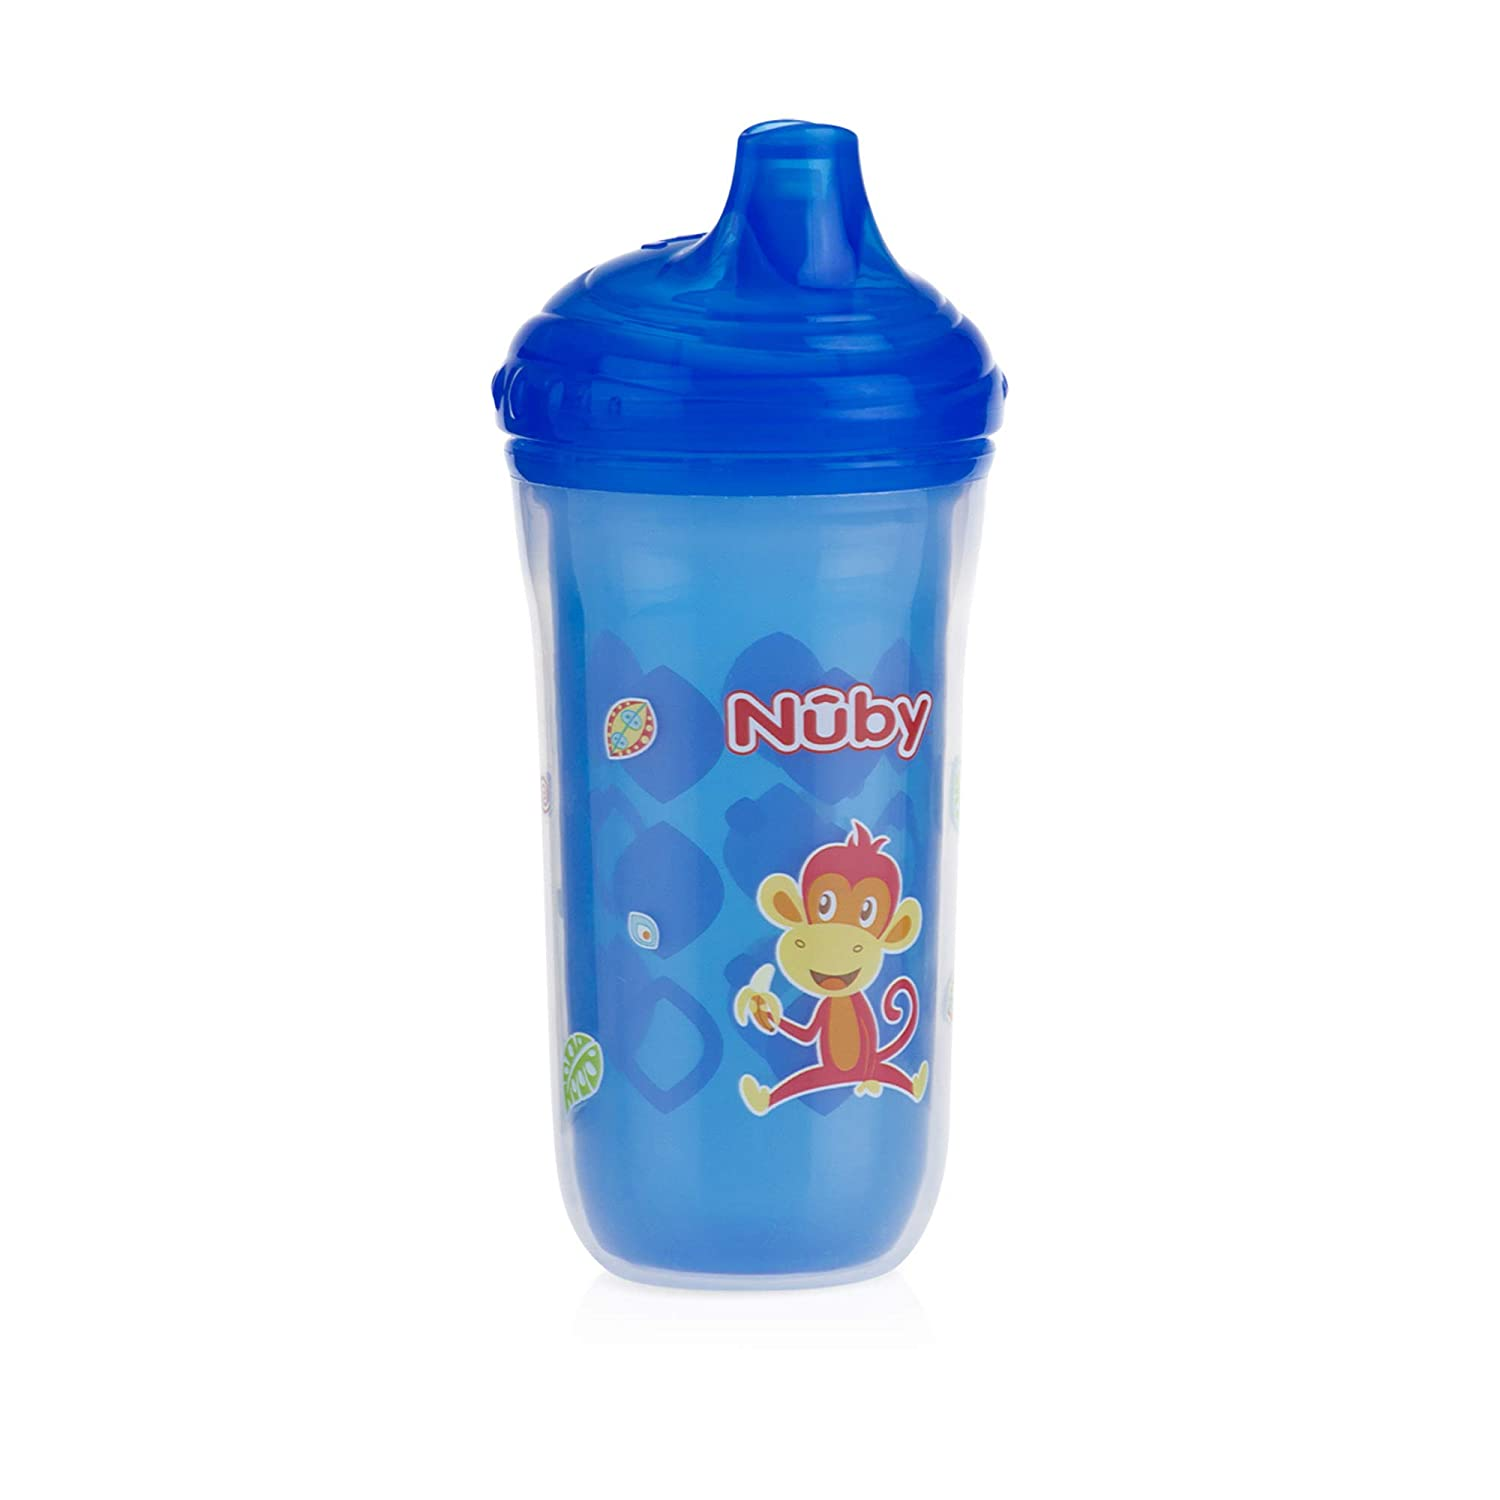 Nuby 3 Piece Insulated No Spill Easy Sip Cup with Vari-Flo Valve Hard Spout 9 Oz Boy